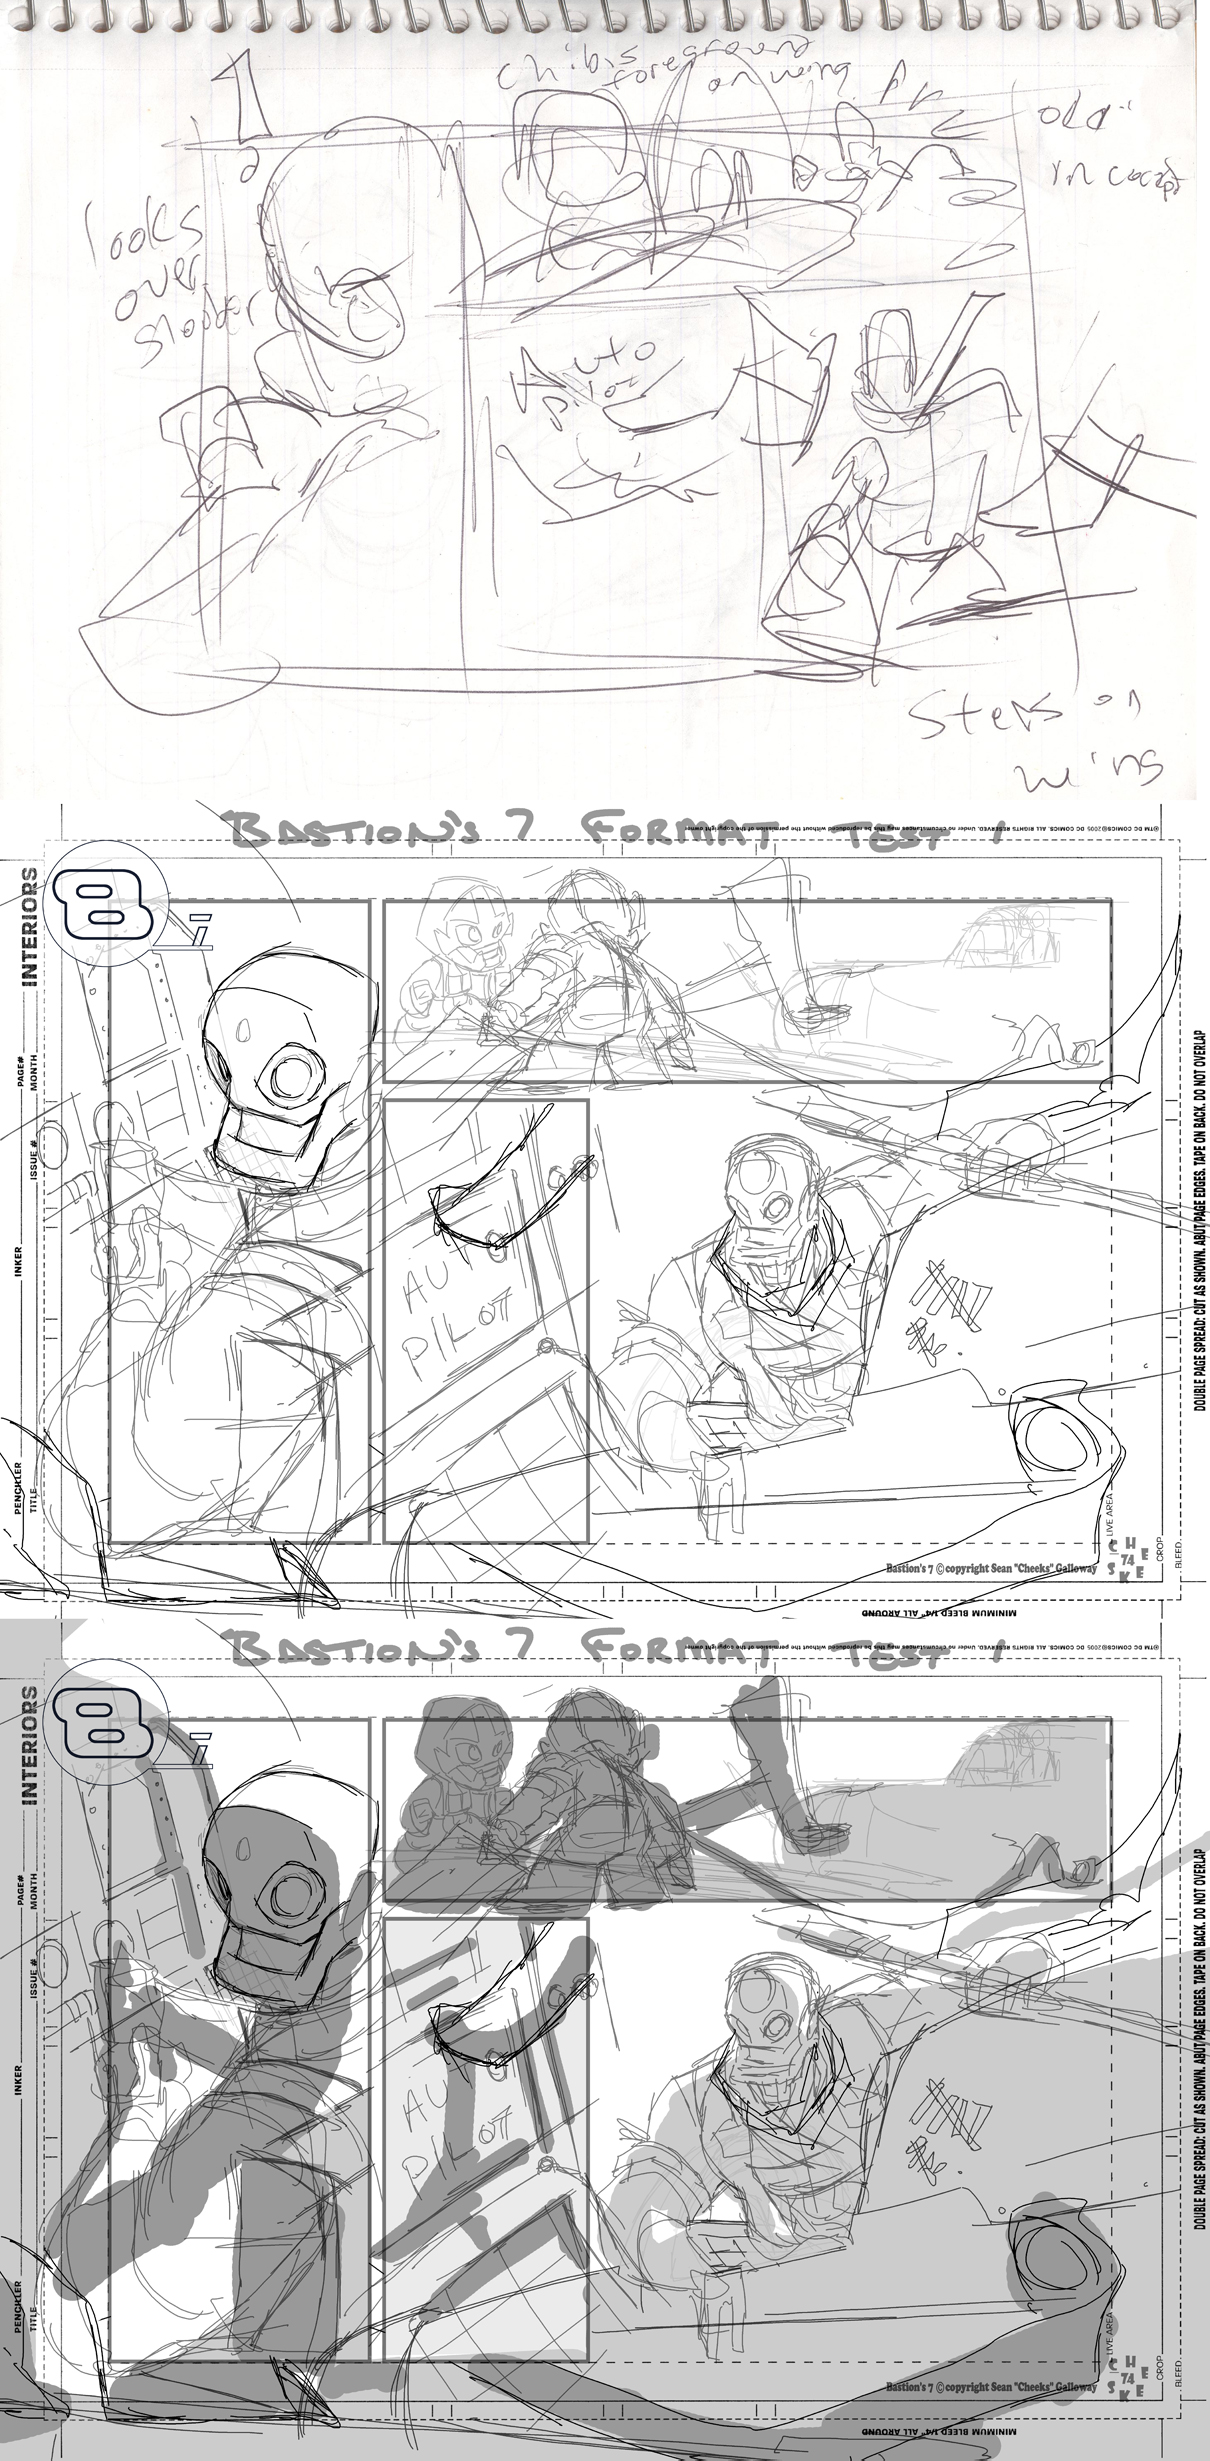 Bastion's 7 Short Story P2 WIP by cheeks-74